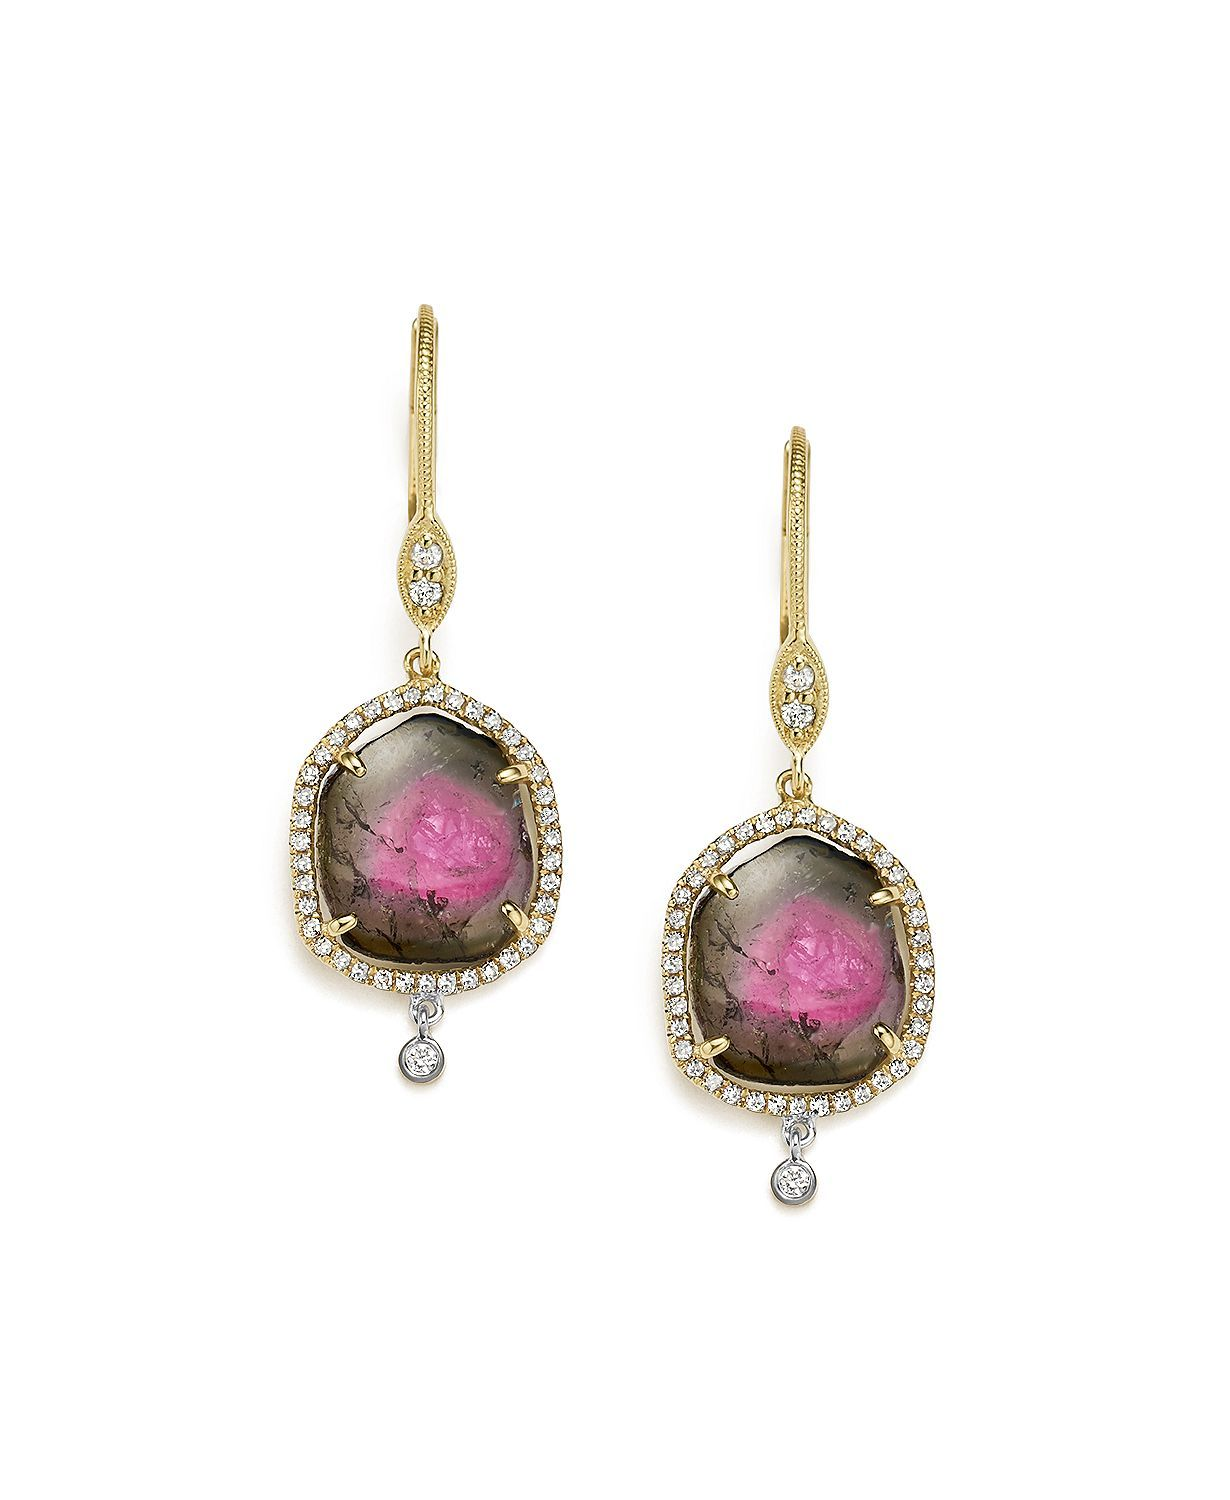 0f70f836e Meira T 14K White and Yellow Gold Diamond and Watermelon Tourmaline Drop  Earrings | Bloomingdales's